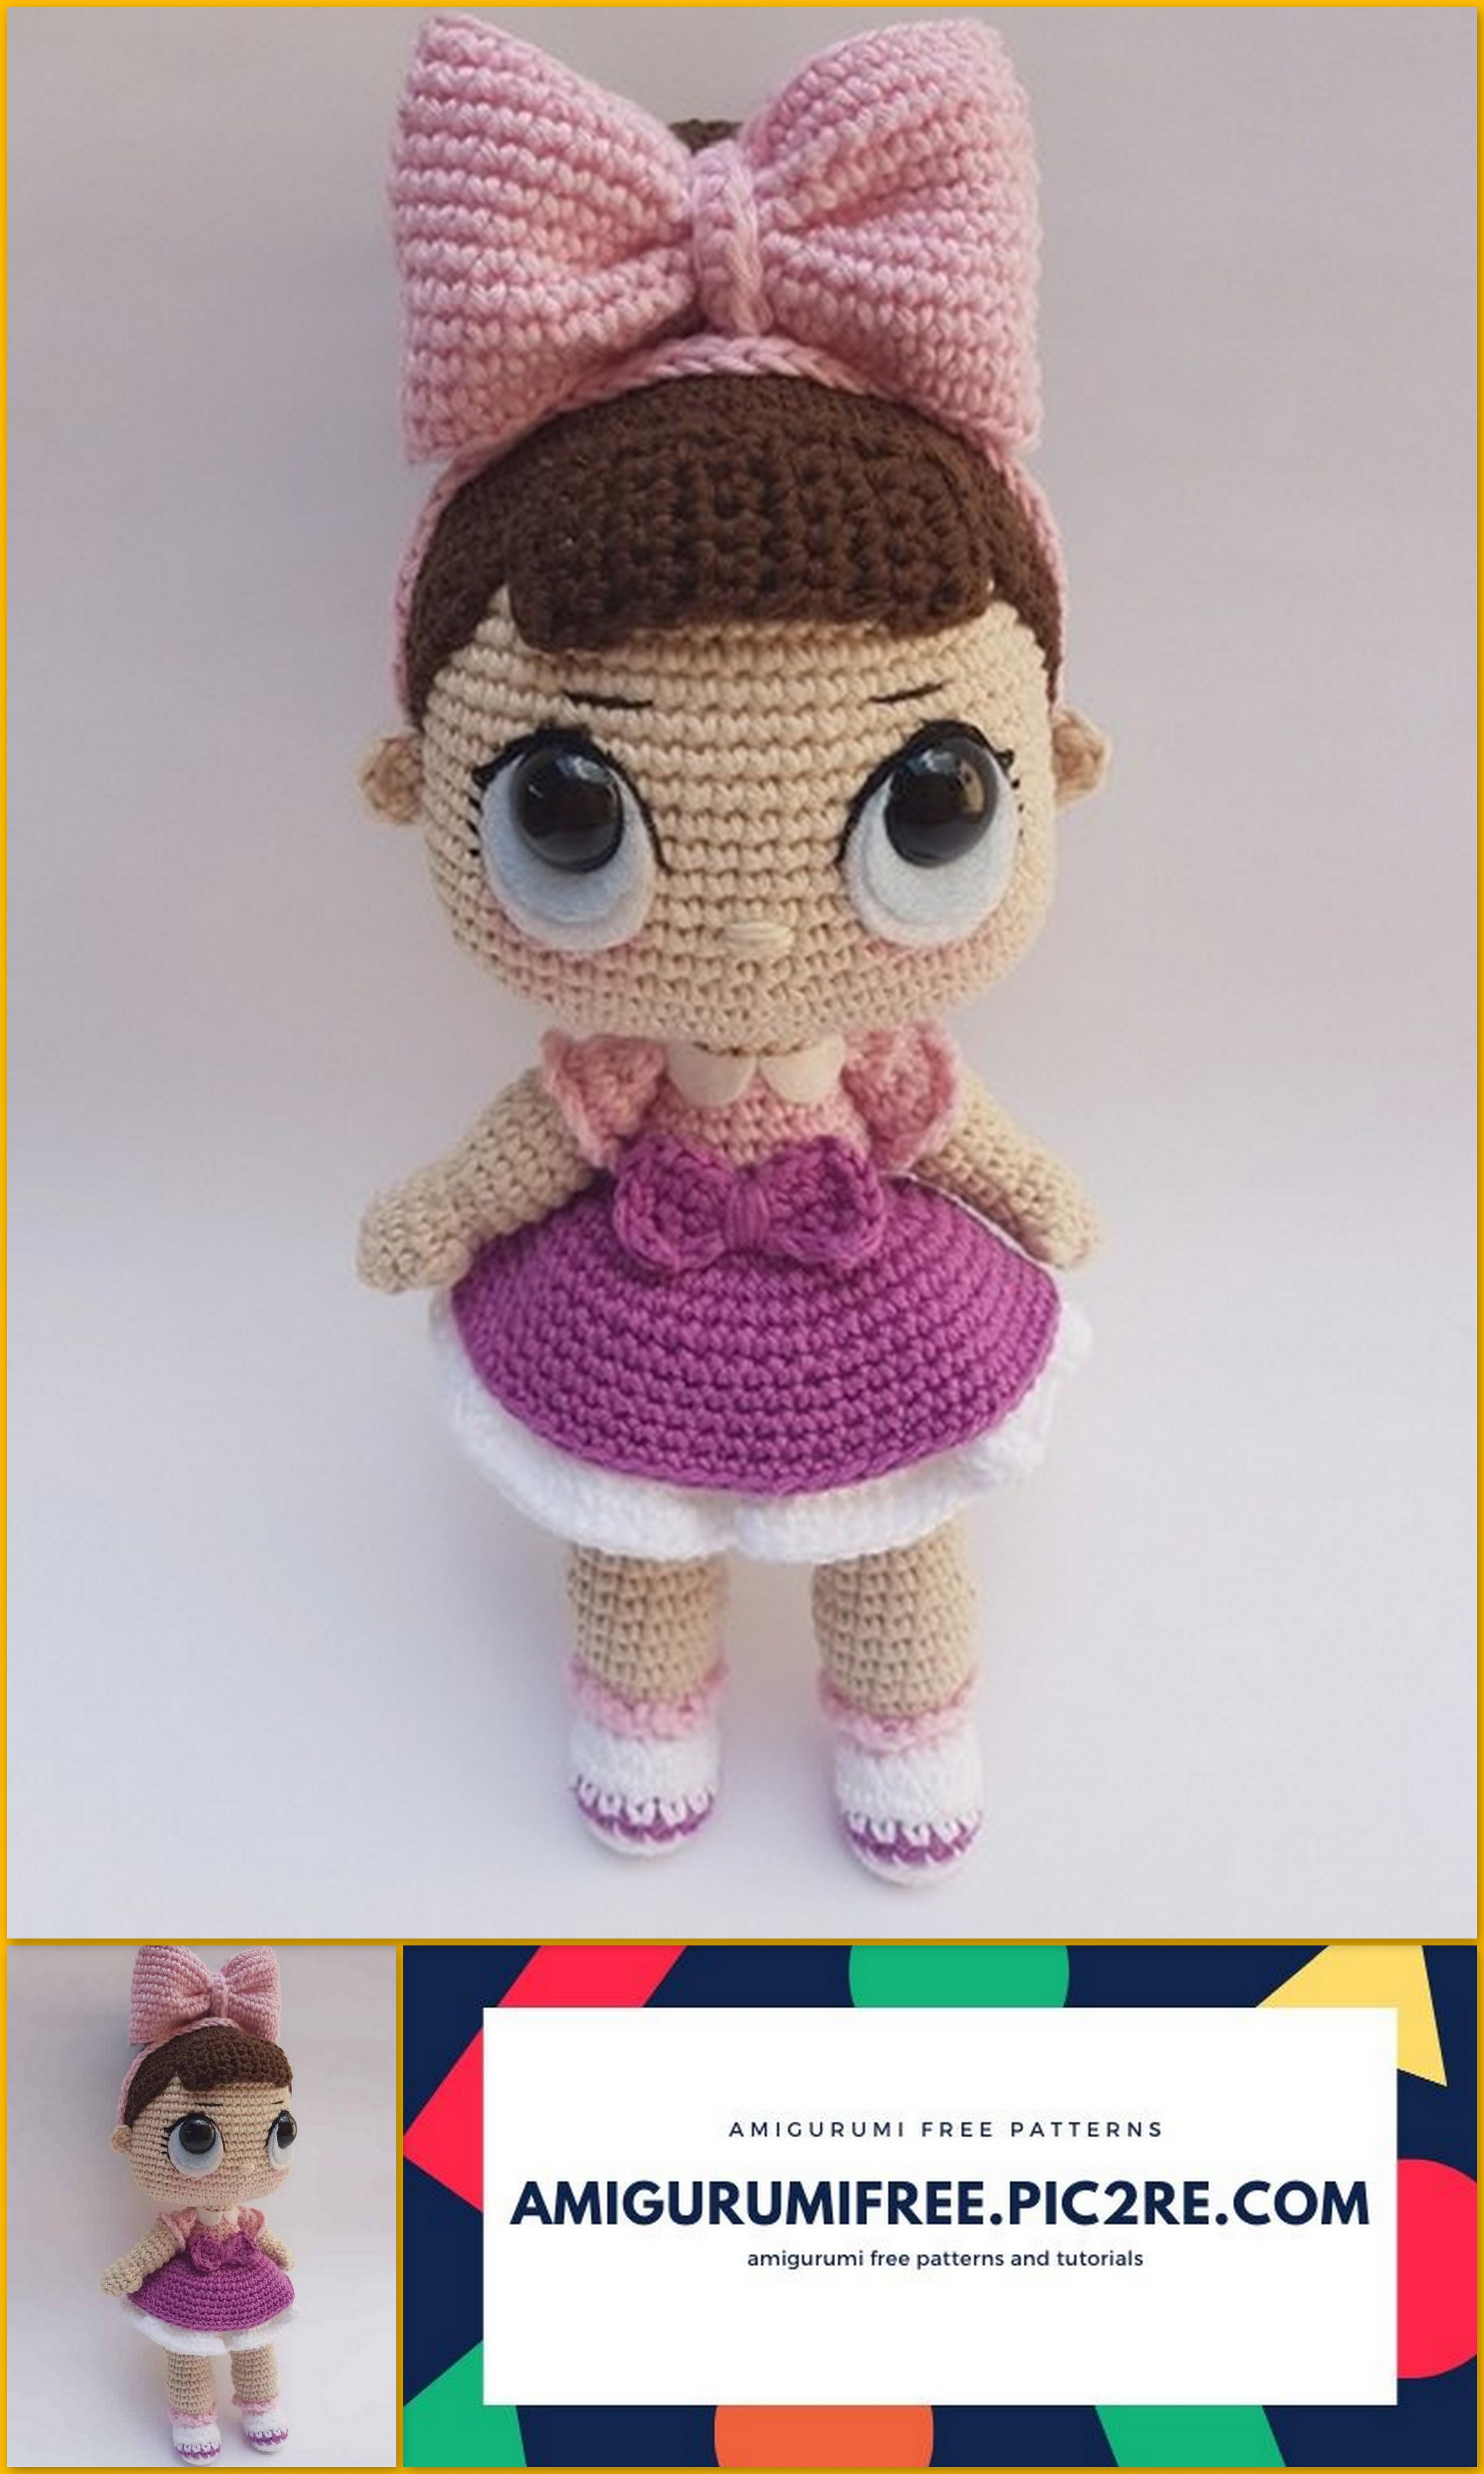 Anime Crochet Doll | Crochet dolls, Crochet doll, Knitted dolls | 5120x3072